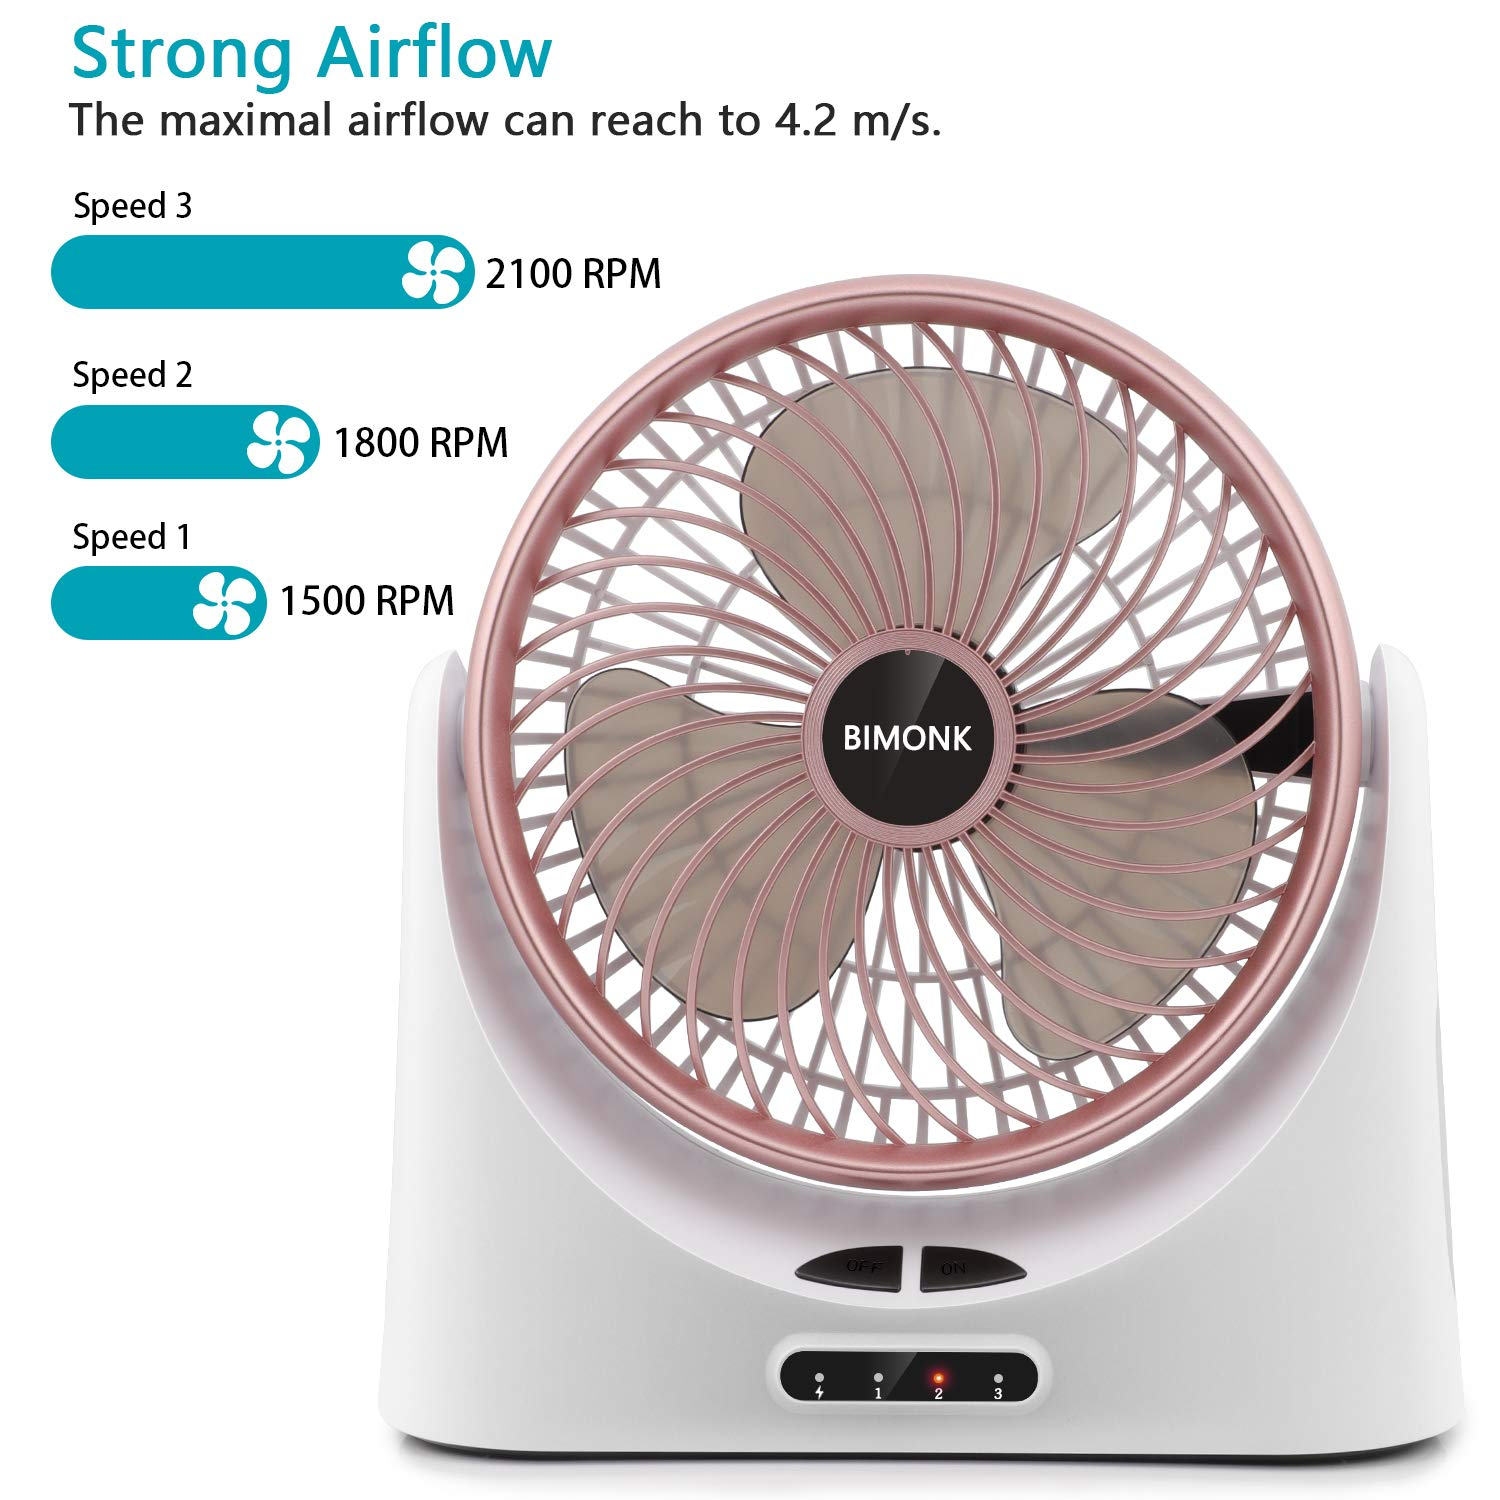 Battery Operated Desk USB Fan, Hand held Rechargeable Fan with Large Capacity 5000mAh, Power Bank Function & LED Light, Strong Airflow, 3 Speeds, 7'' Personal Cooling Fan for Camping Home Office by BIMONK (Image #2)